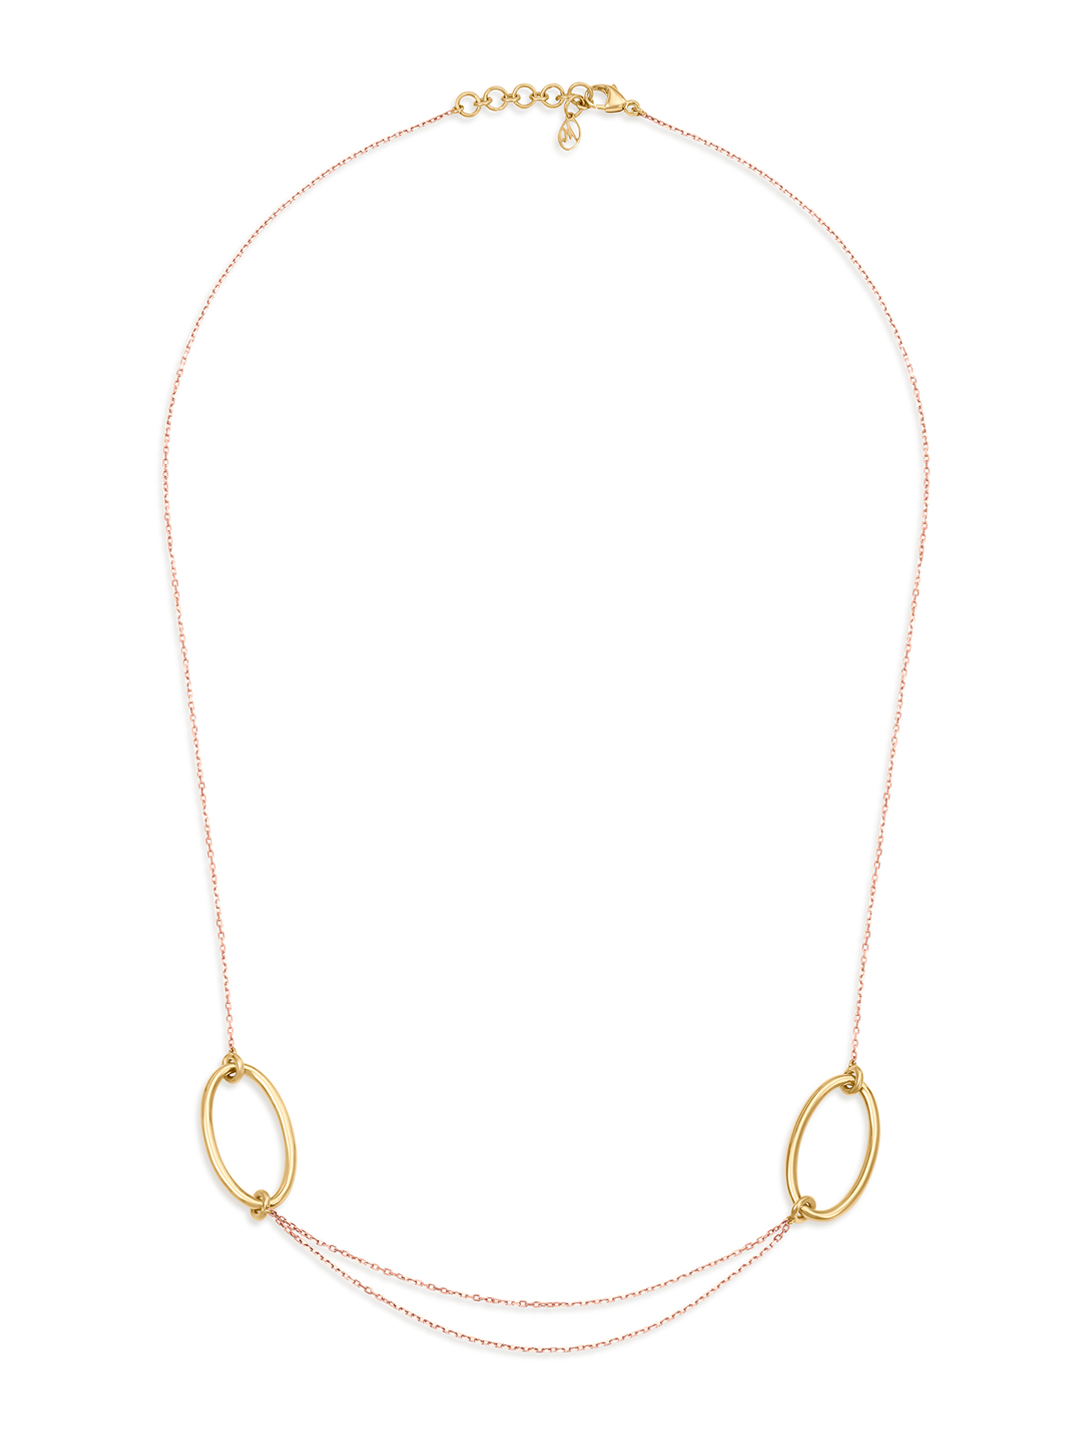 Mia by Tanishq 14-Karat Yellow Gold Necklace Price in India